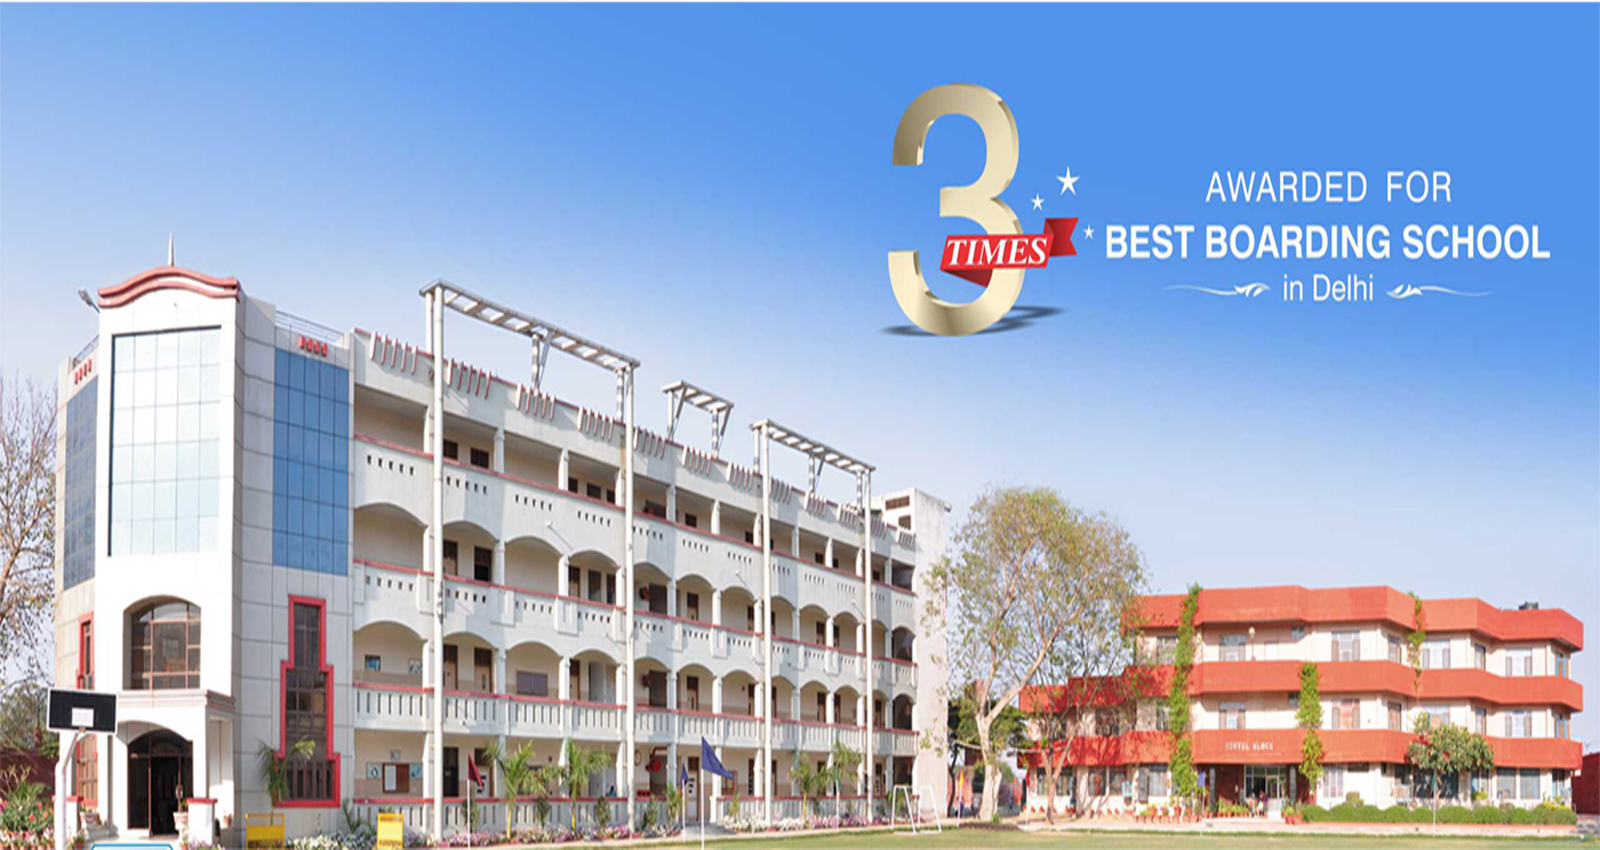 School with Hostel Facility in Delhi